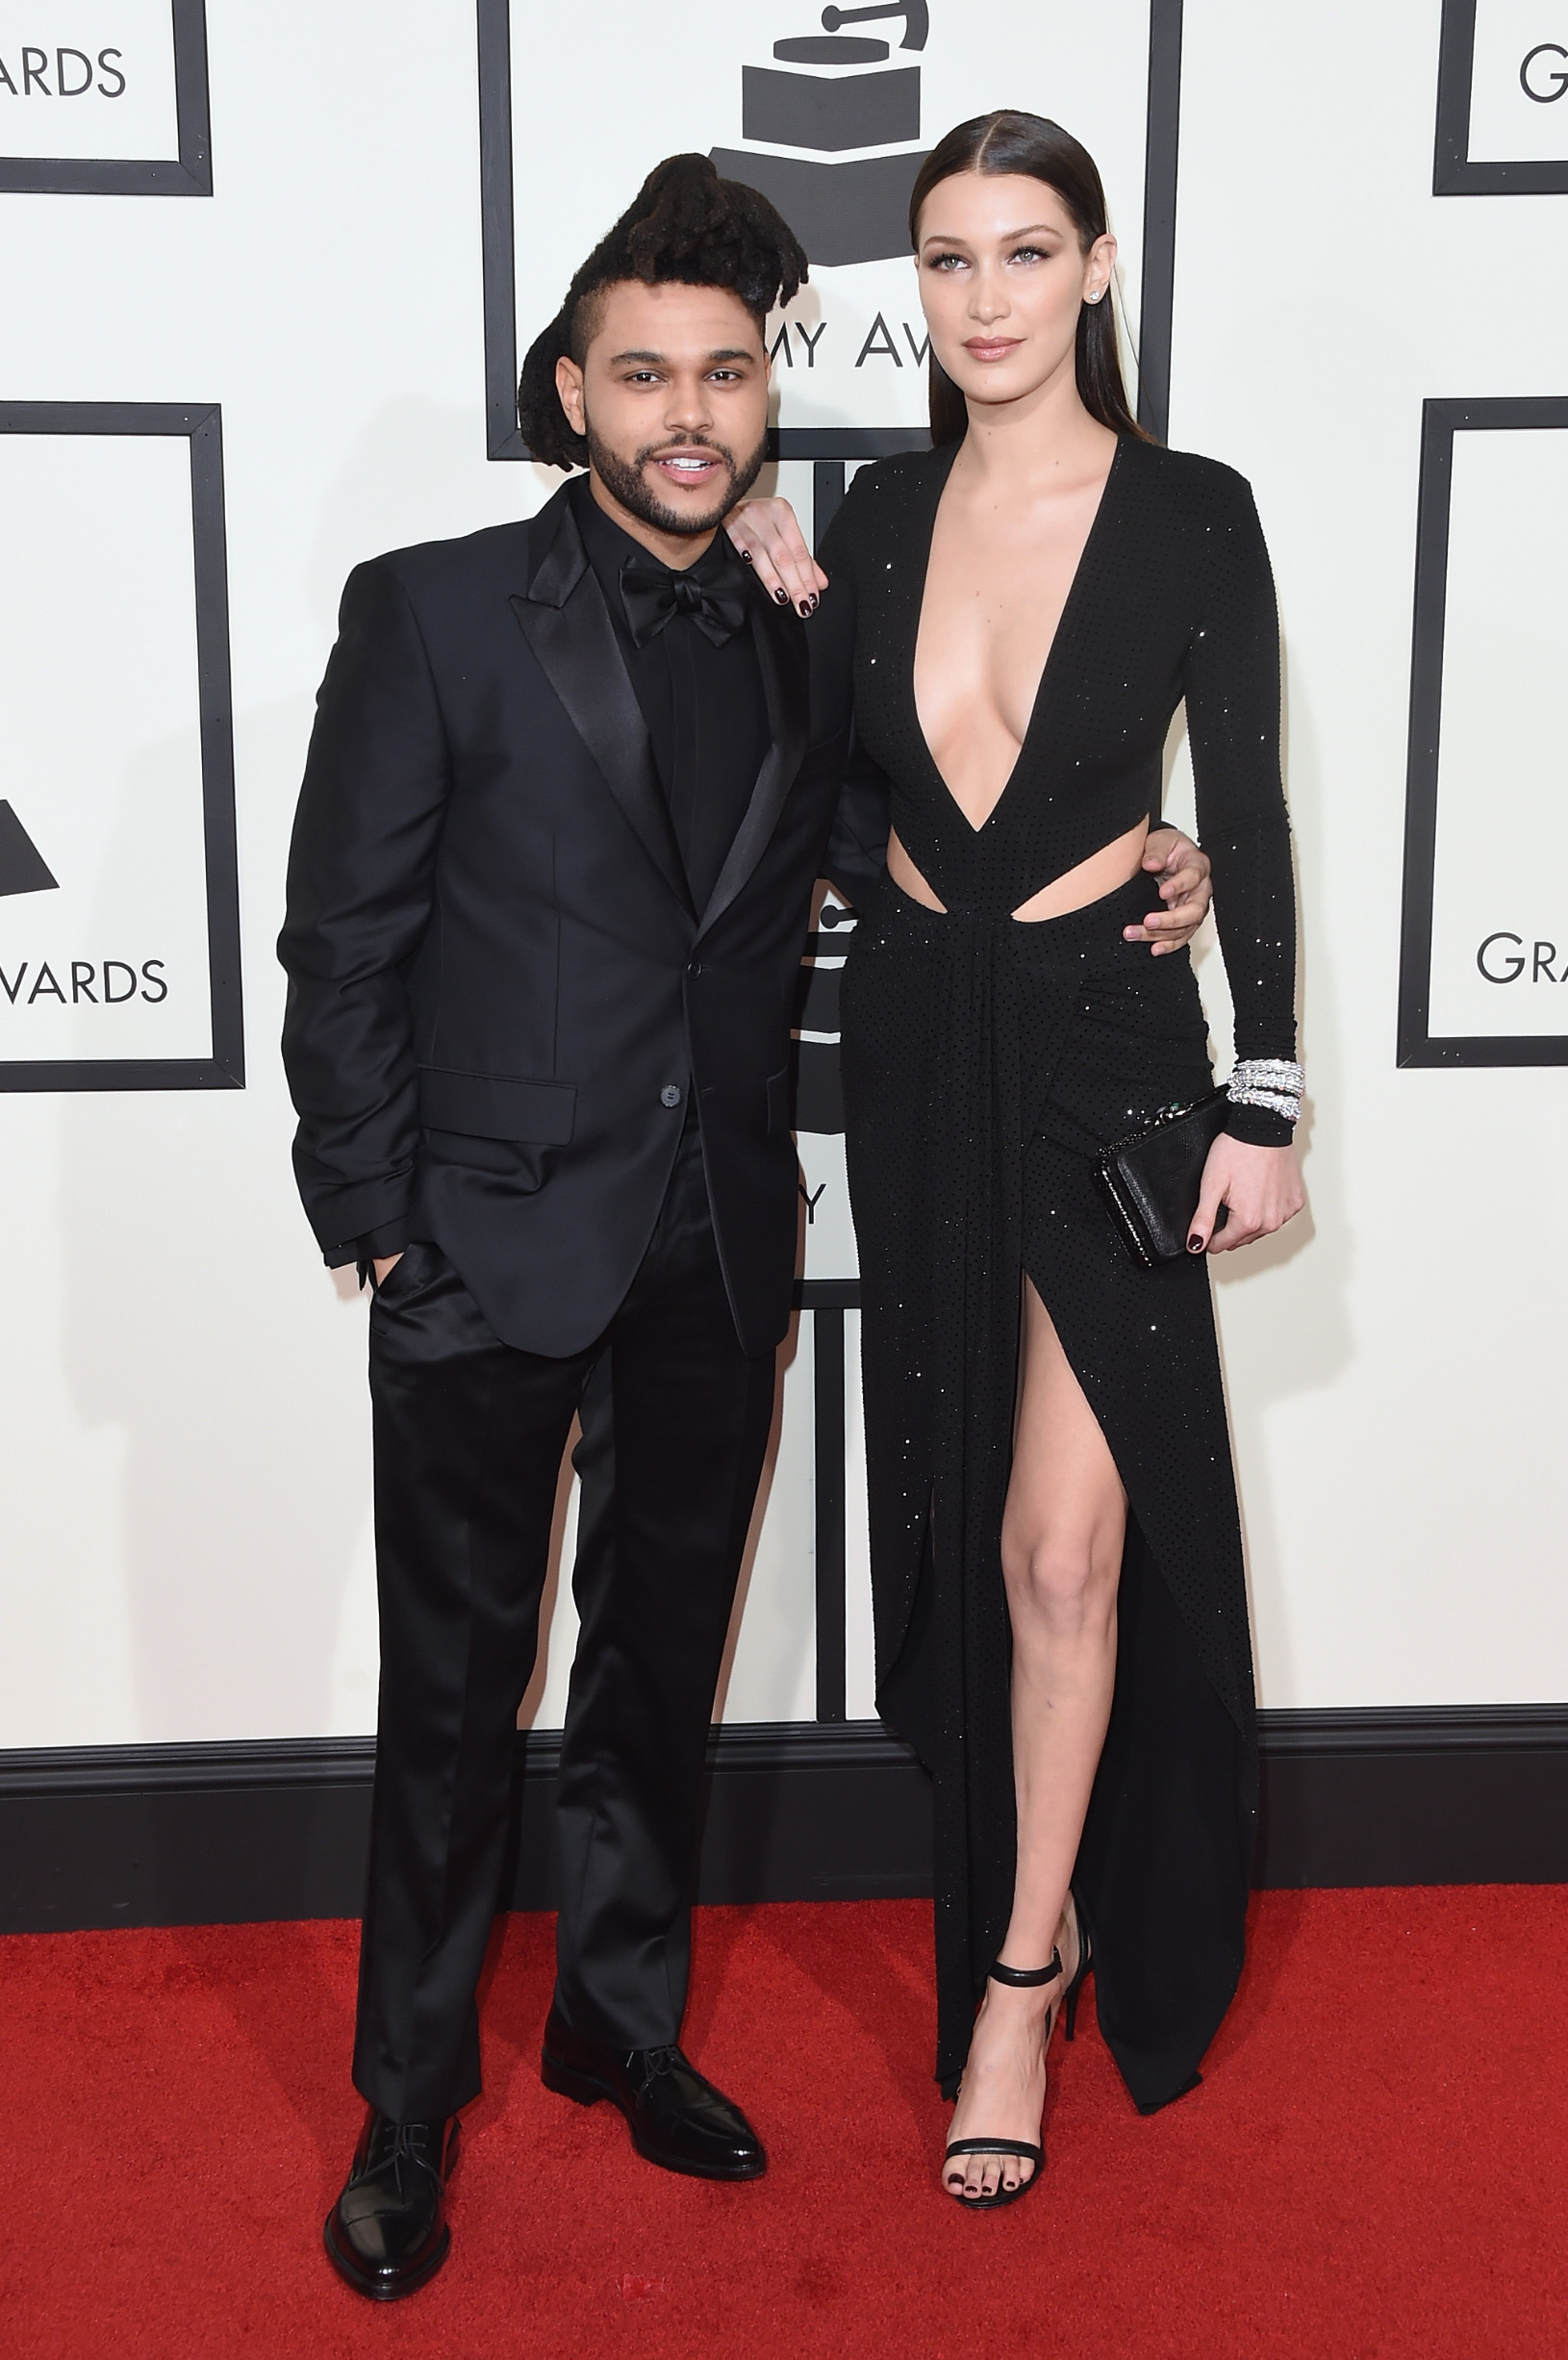 LOS ANGELES, CA - FEBRUARY 15:  Singer The Weeknd (L) and model Bella Hadid attend The 58th GRAMMY Awards at Staples Center on February 15, 2016 in Los Angeles, California.  (Photo by Jason Merritt/Getty Images)